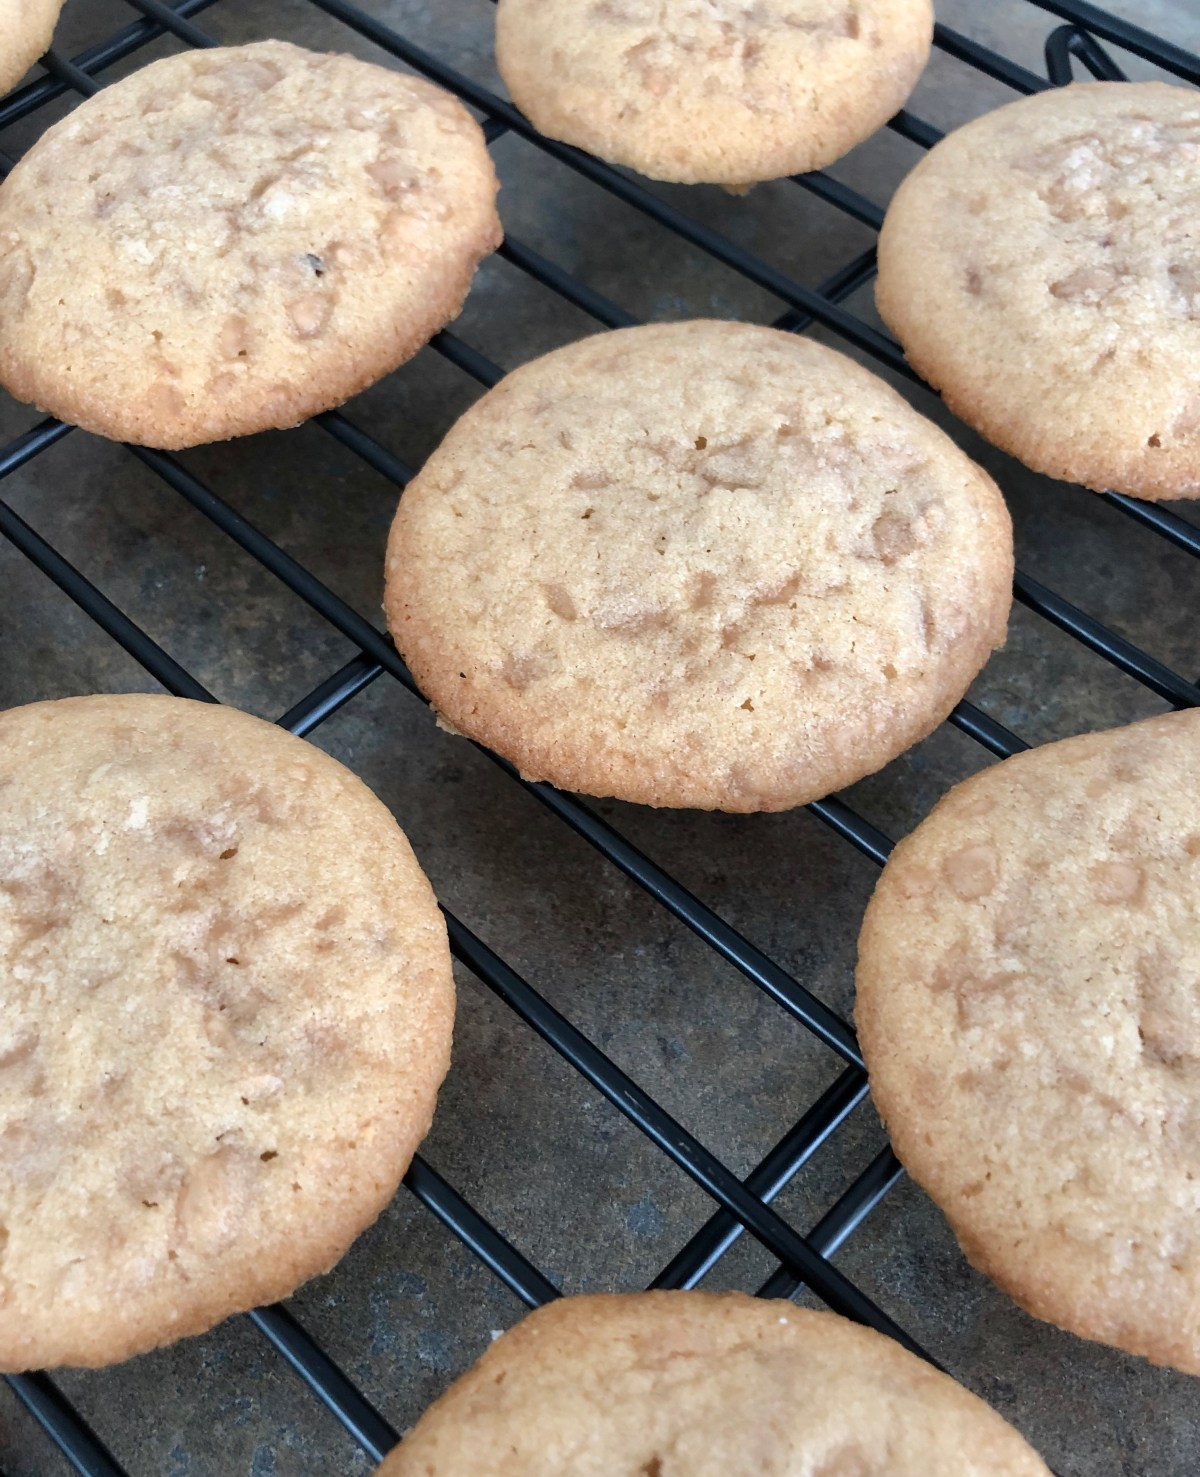 Toffee Cookies cooling on a wire rack.